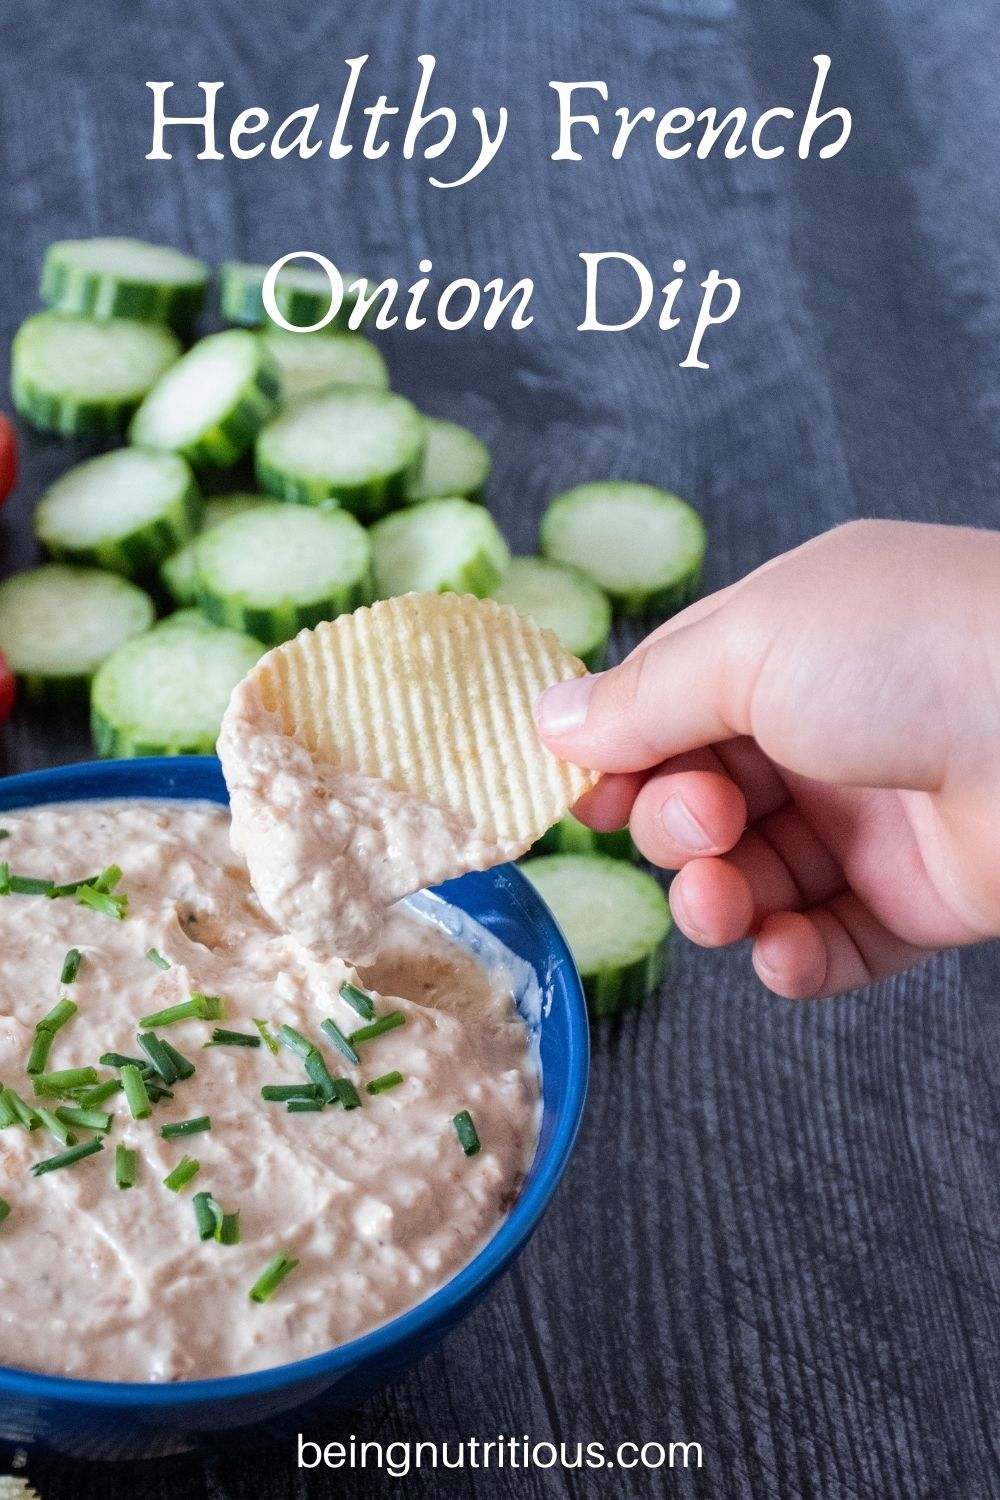 Bowl of dip with cucumber slices in background. Hand holding a chip with dip on it above bowl. Text overlay: Healthy French Onion Dip